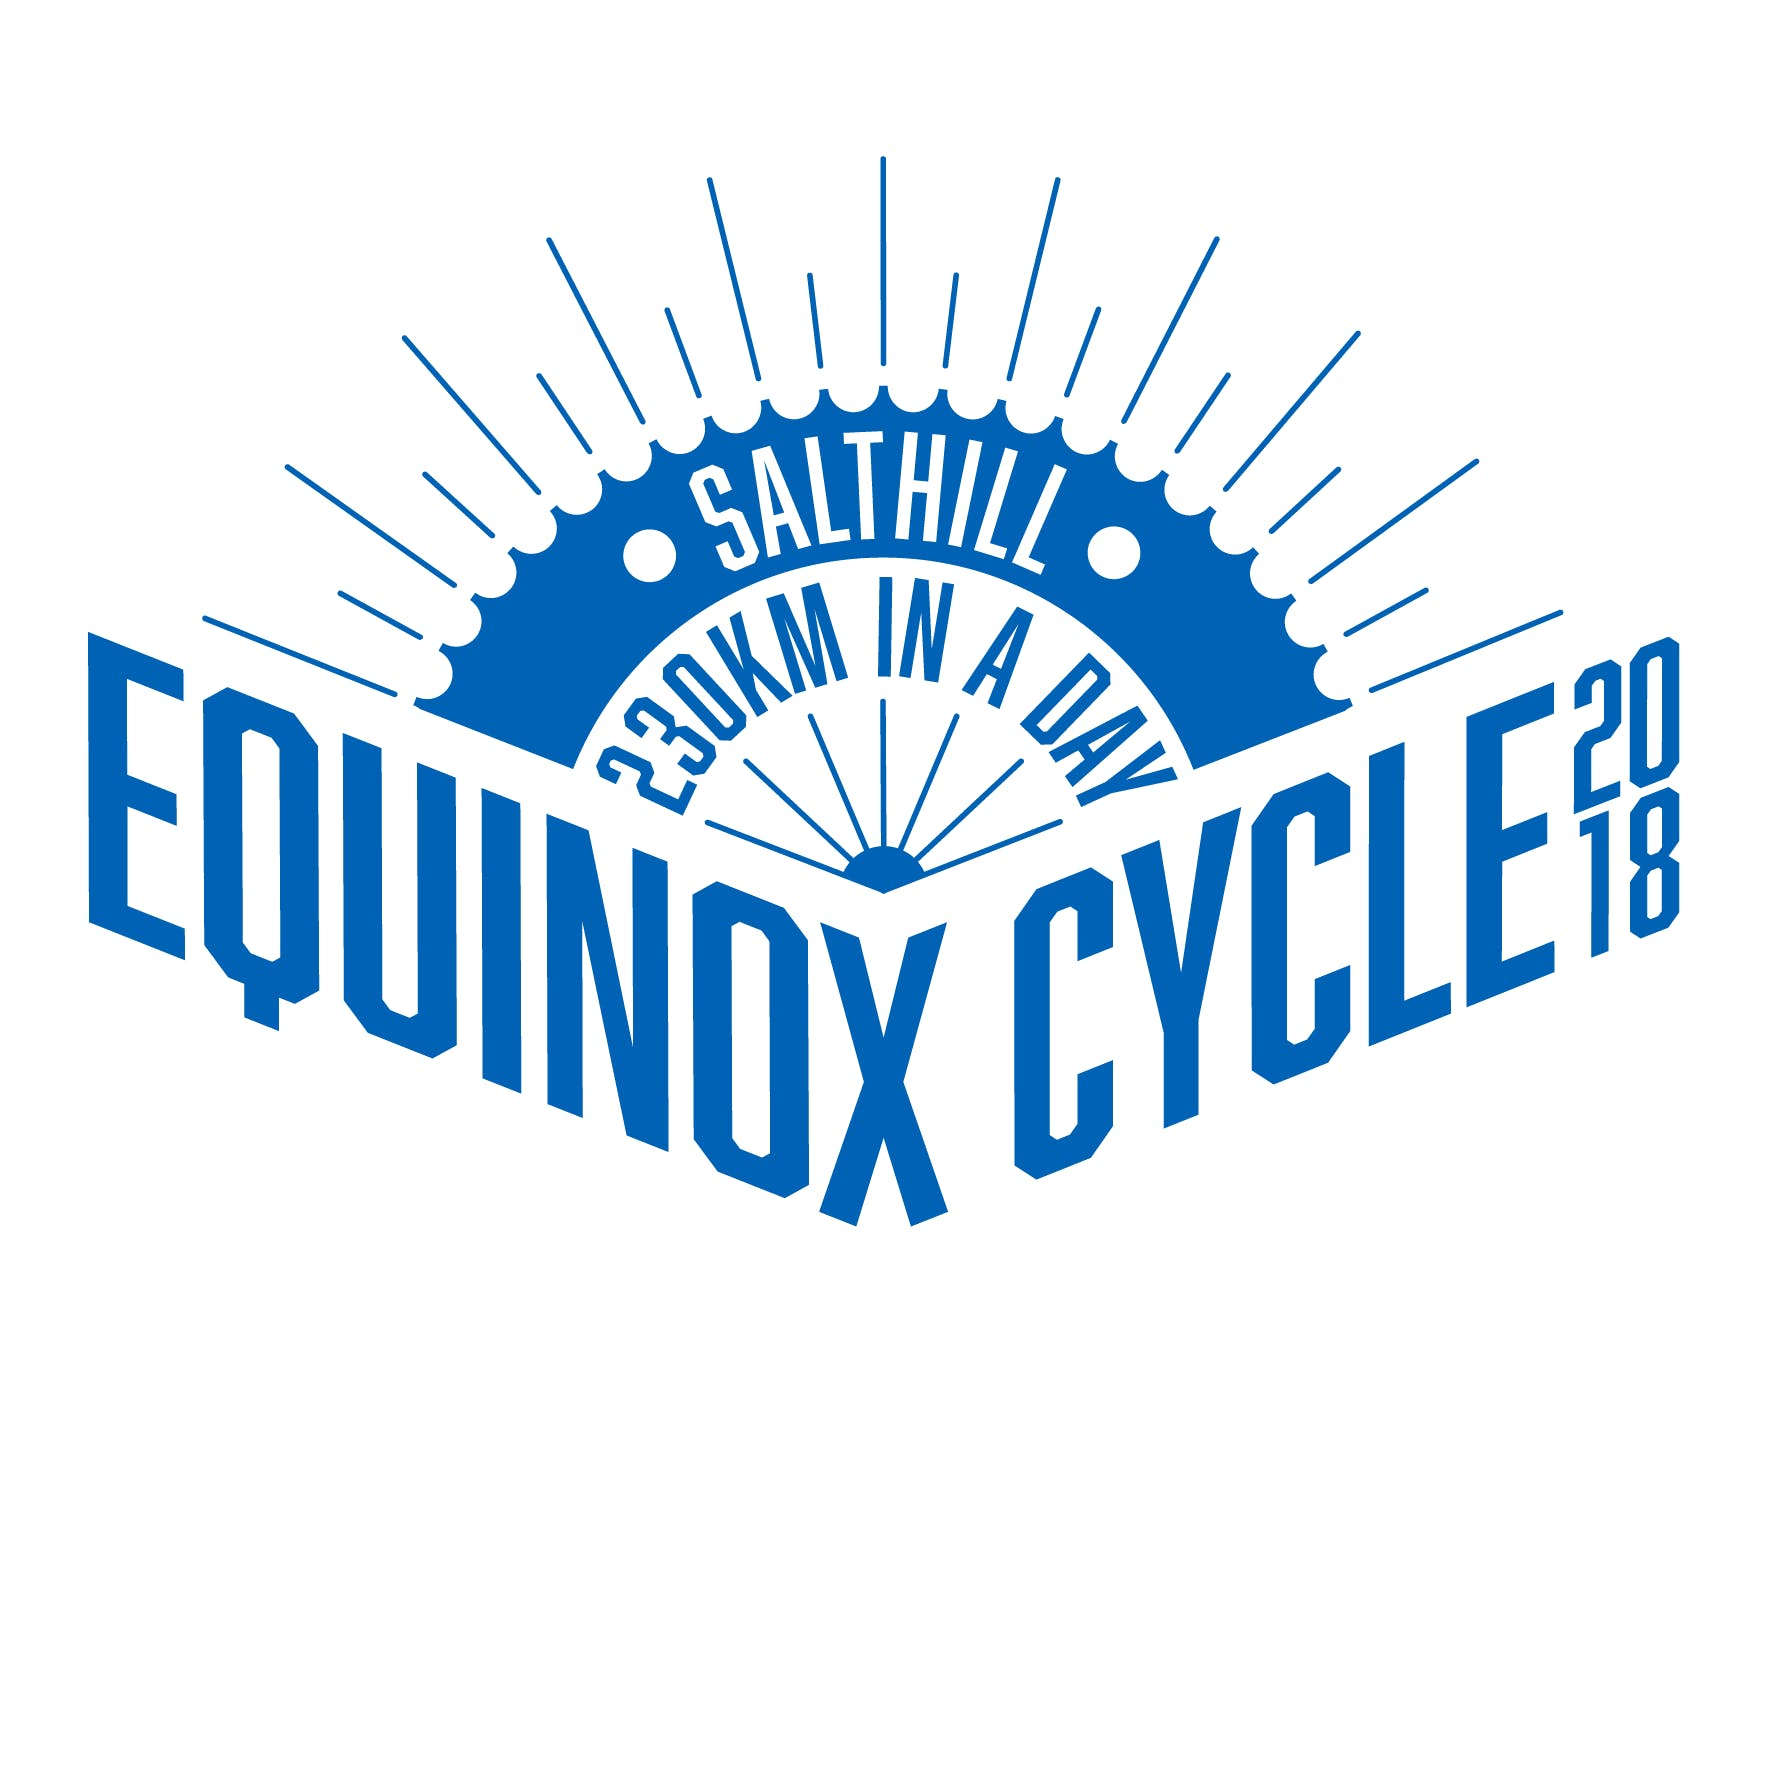 Equinox Cycle 2018 (230k in a day)